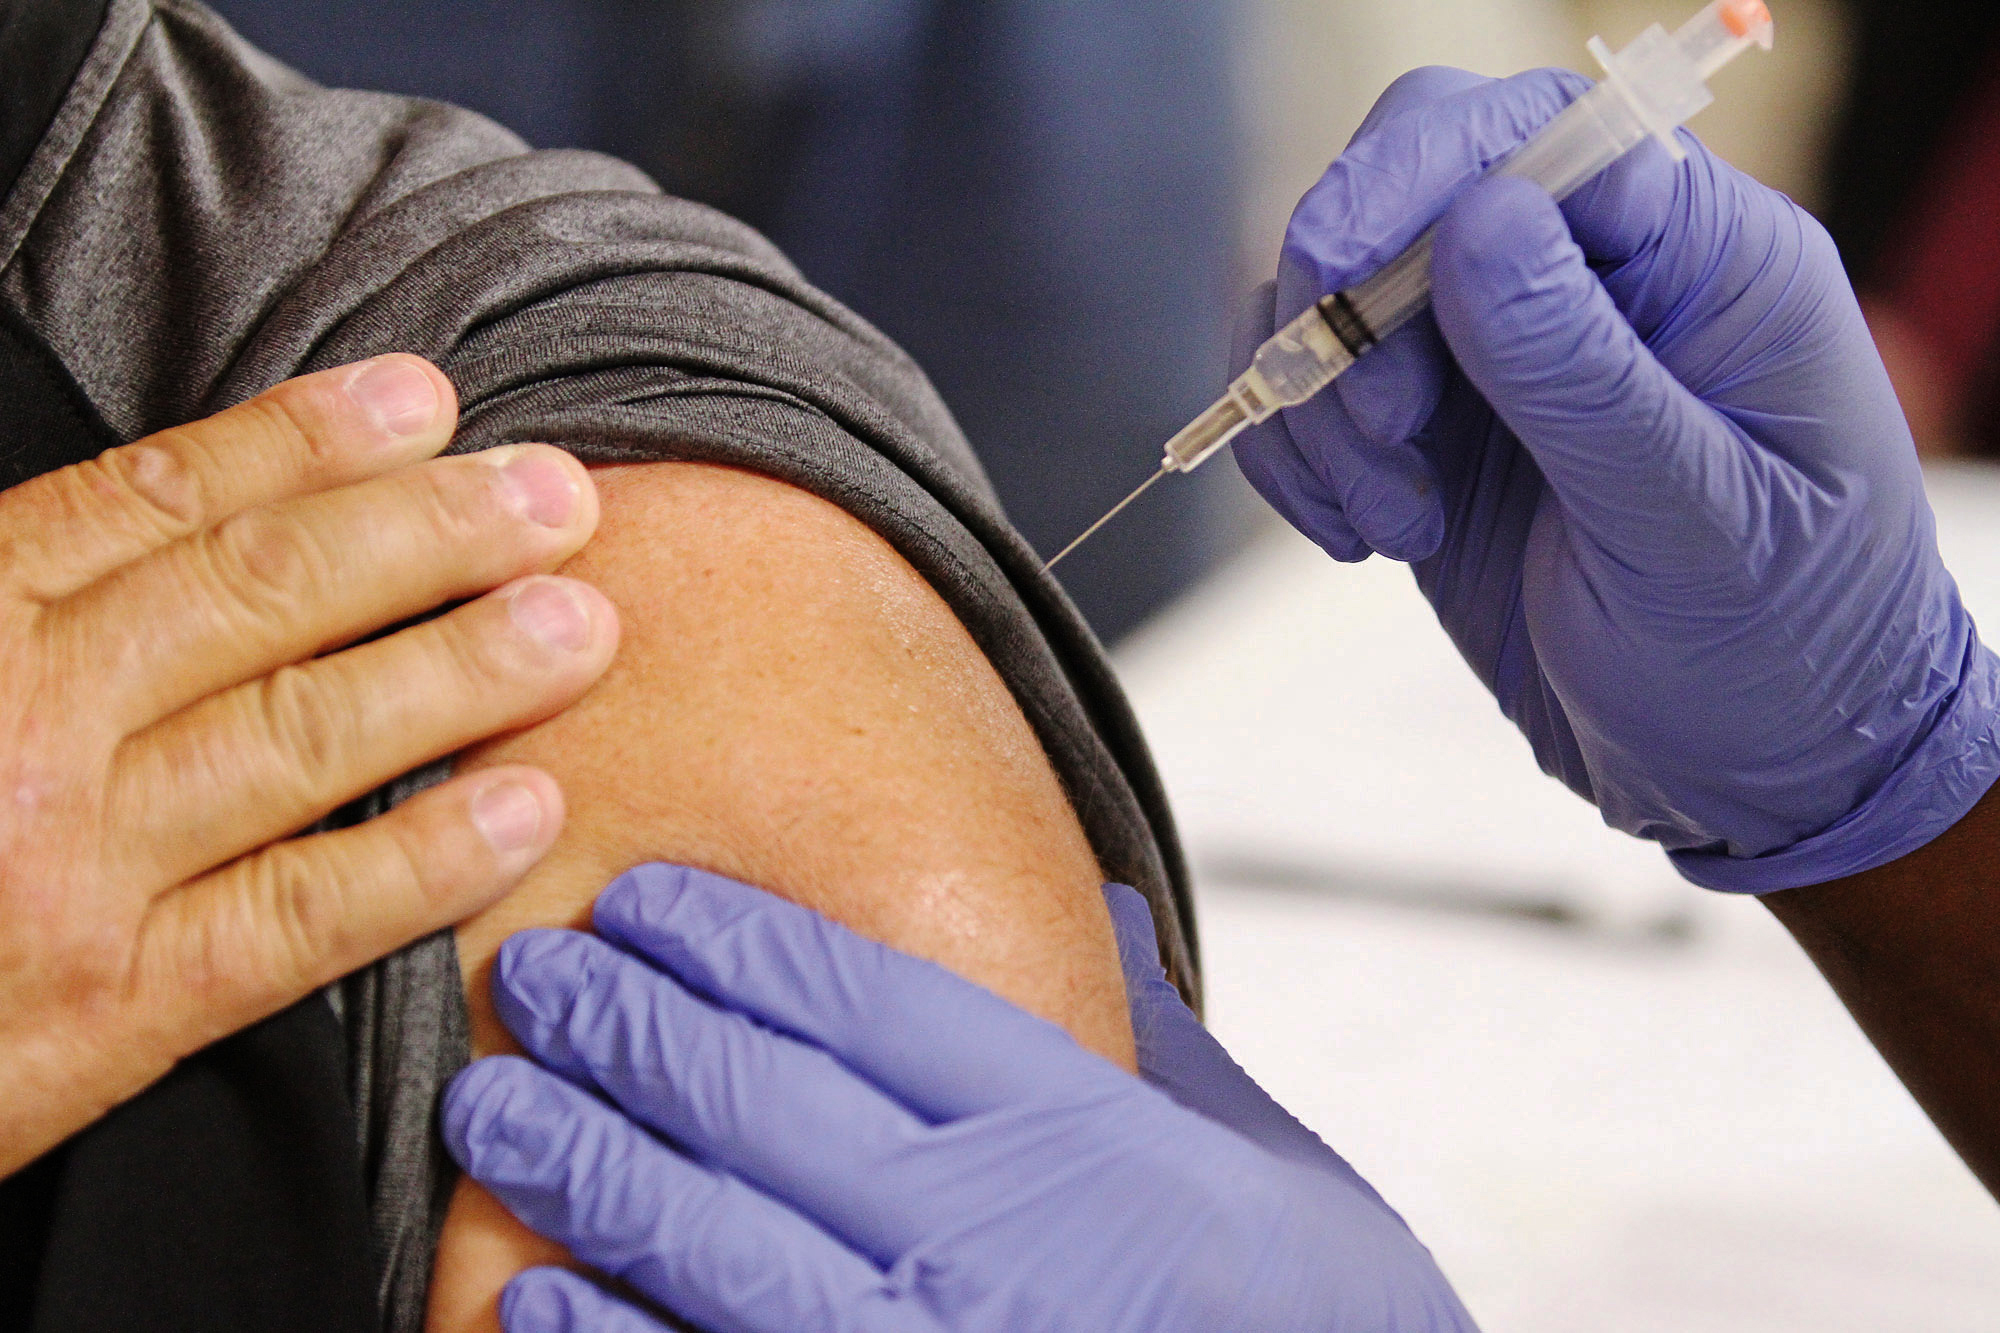 The flu shot: The myths, the facts and why doctors recommend It